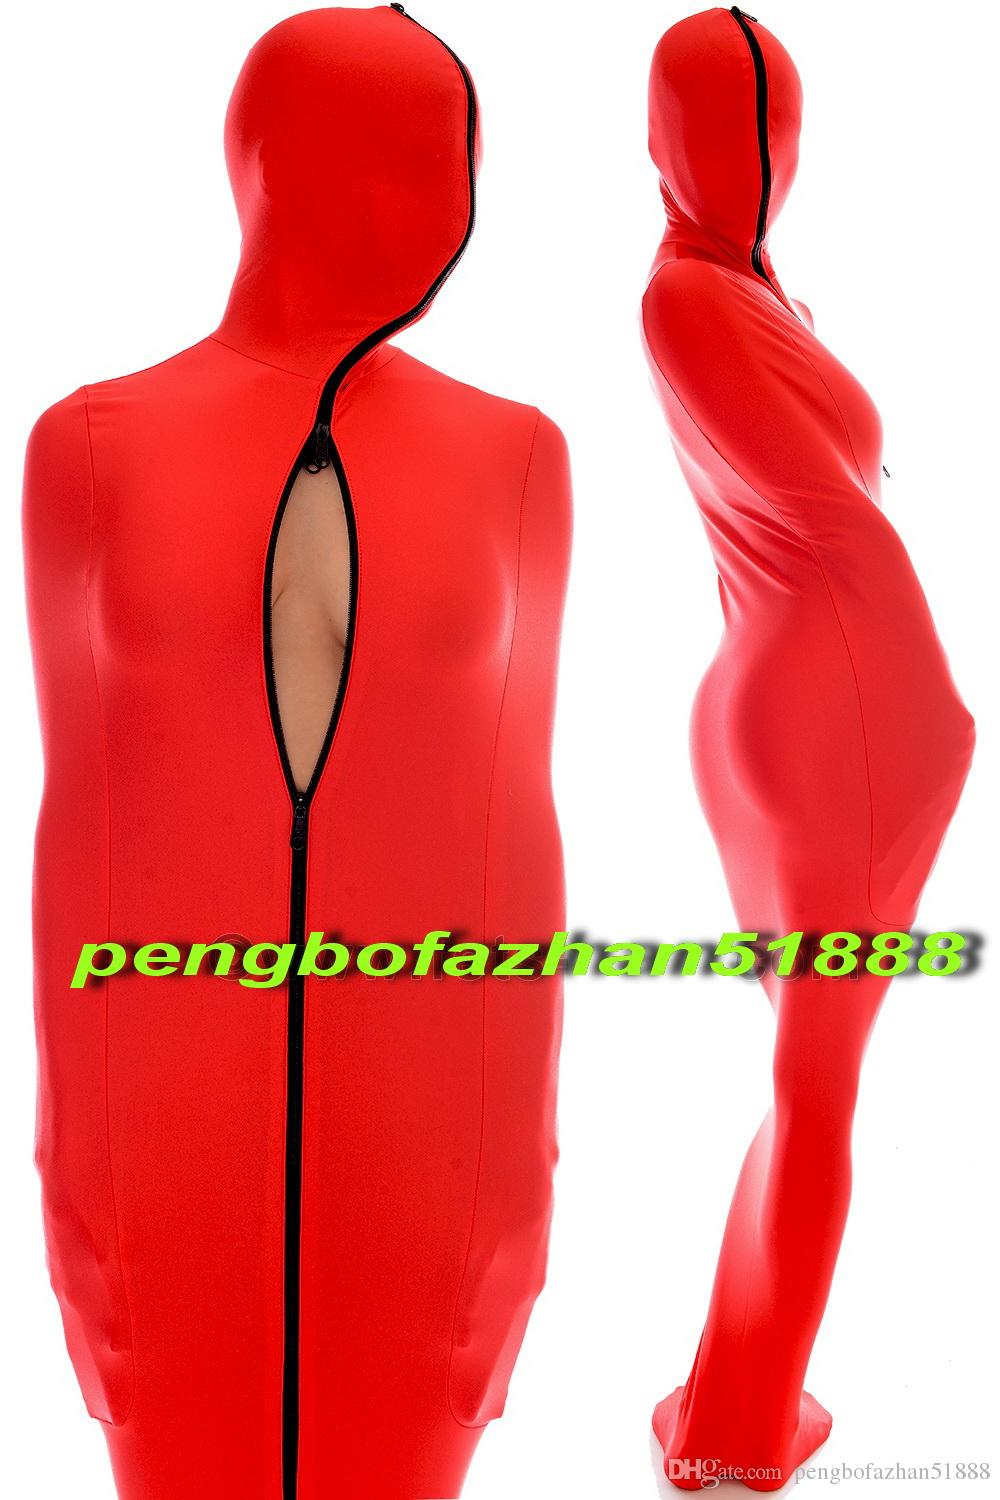 Red Lycra Spandex Mummy Suit Costumes With internal Arm Sleeves Unisex Sleeping Bag Unisex Mummy Costumes Outfit Halloween Cosplay Suit P018